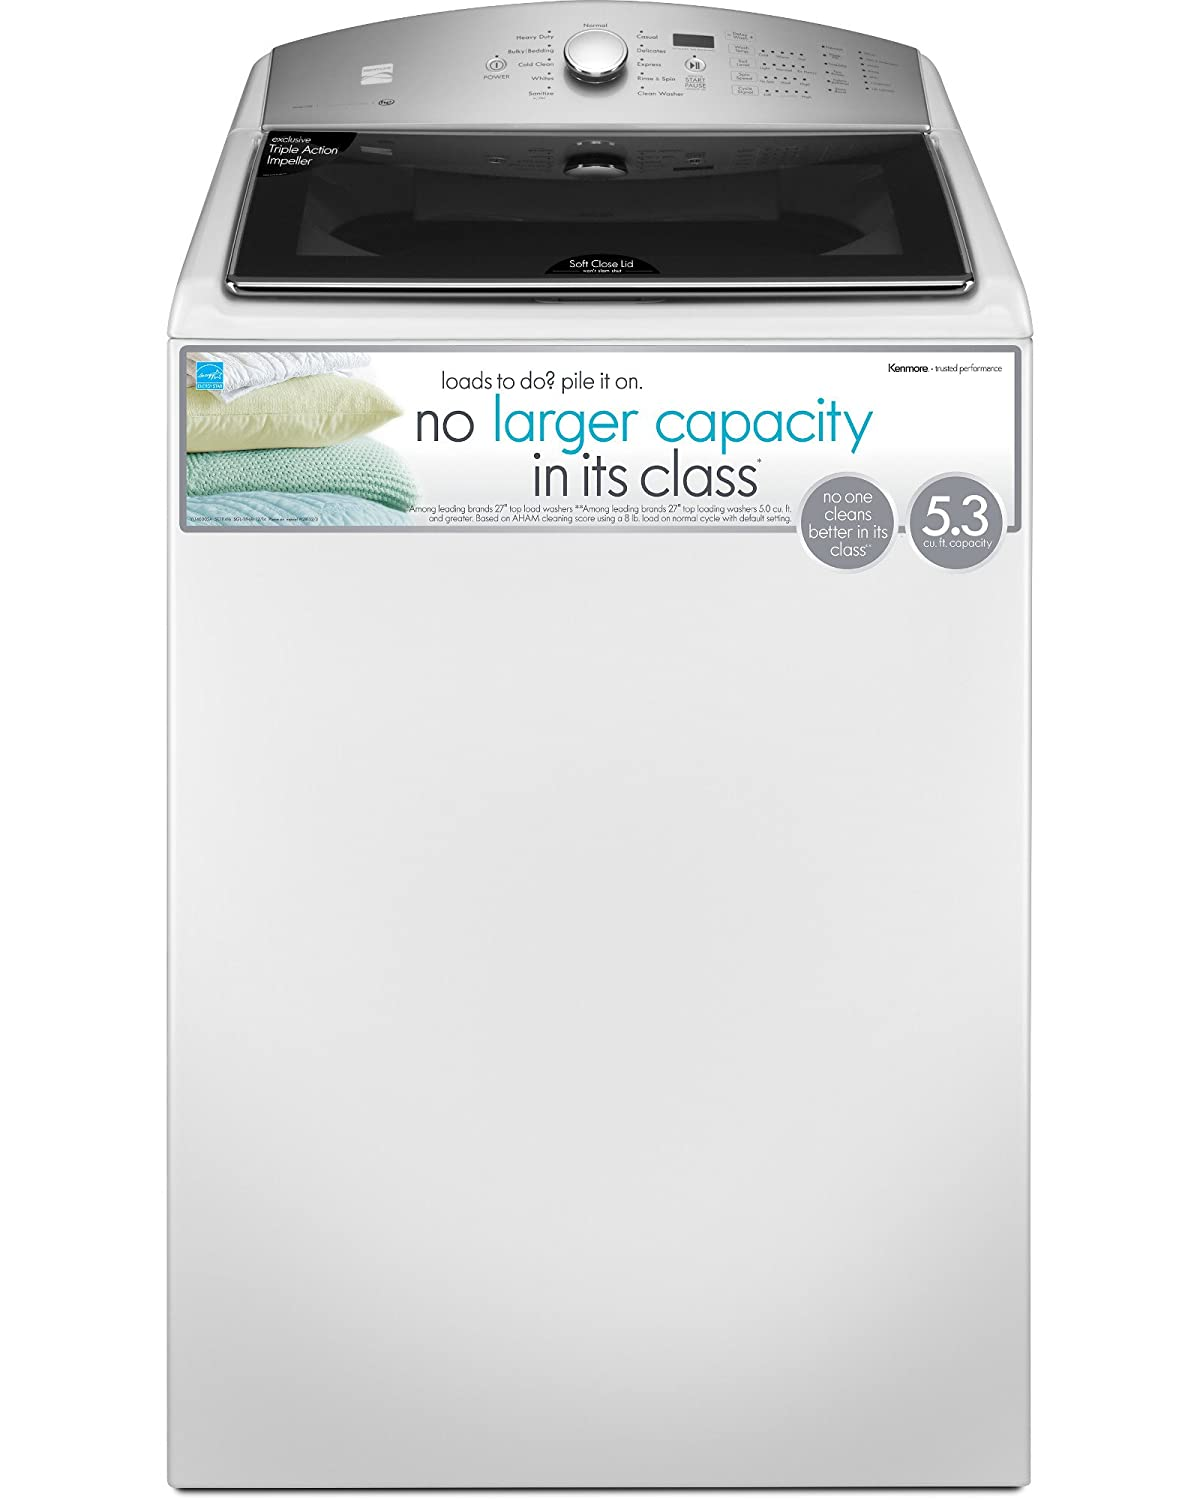 Amazon.com: Kenmore 28132 5.3 cu. ft. Top Load Washer in White, includes  delivery and hookup: Appliances